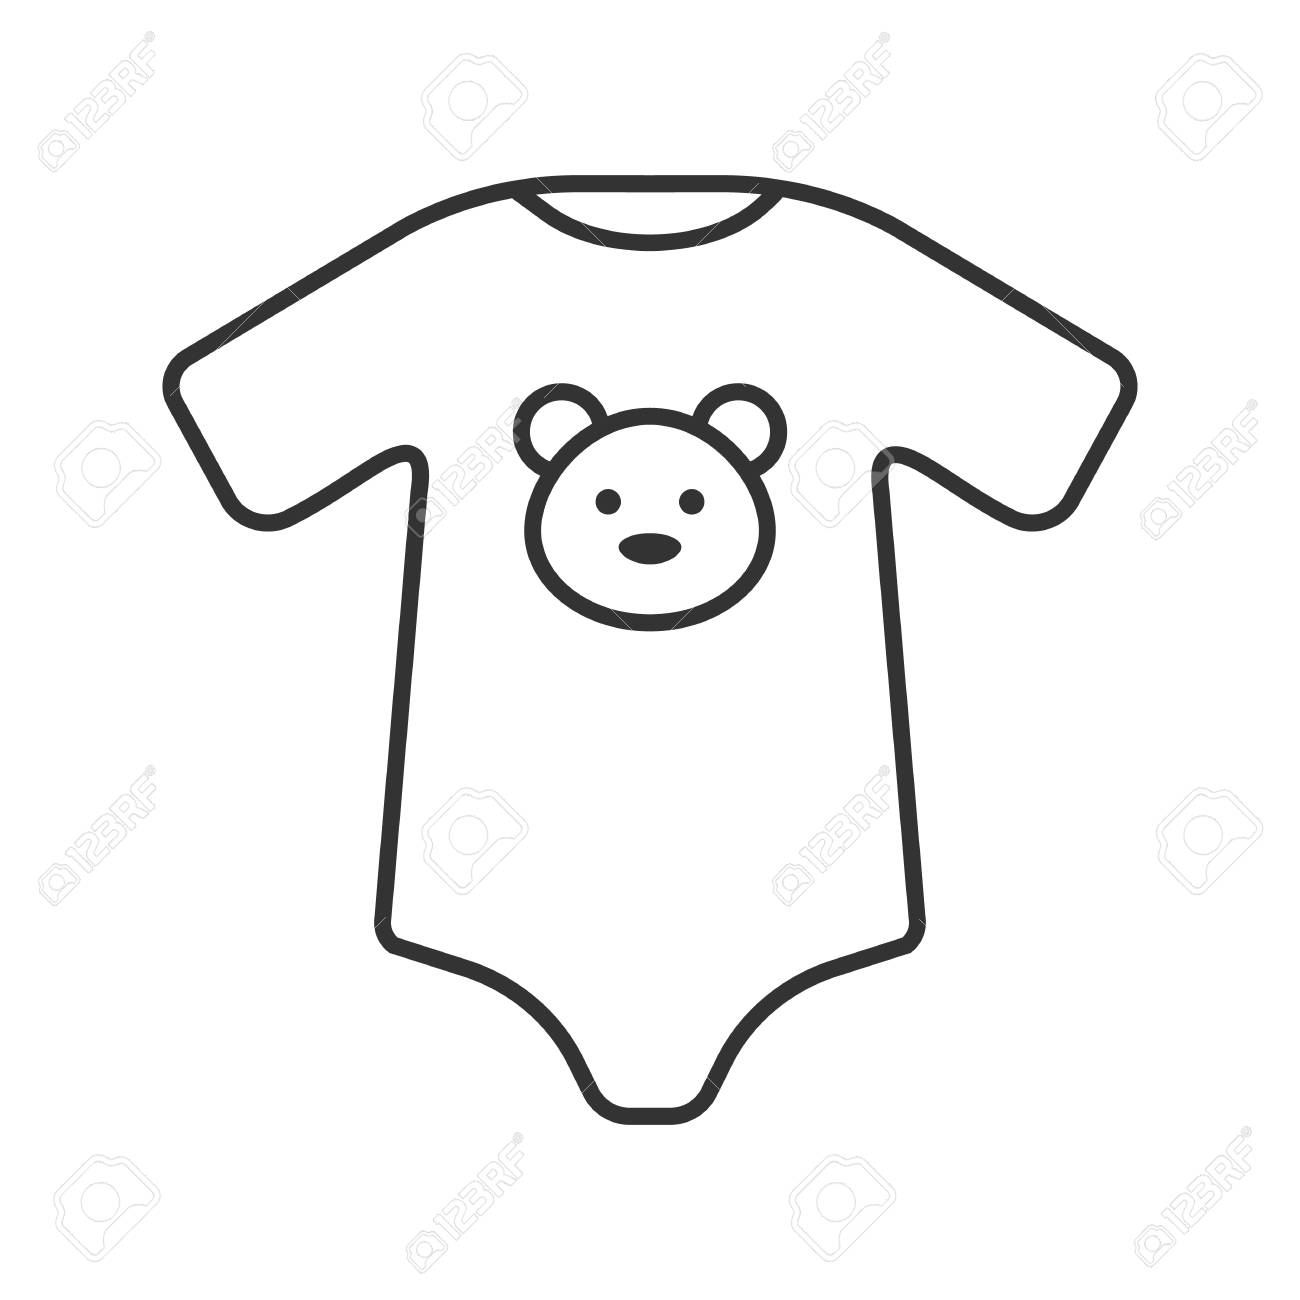 ddd831000f2 Vector isolated outline drawing. Baby bodysuit linear icon. Thin line  illustration. Newborn baby clothes. Contour symbol.